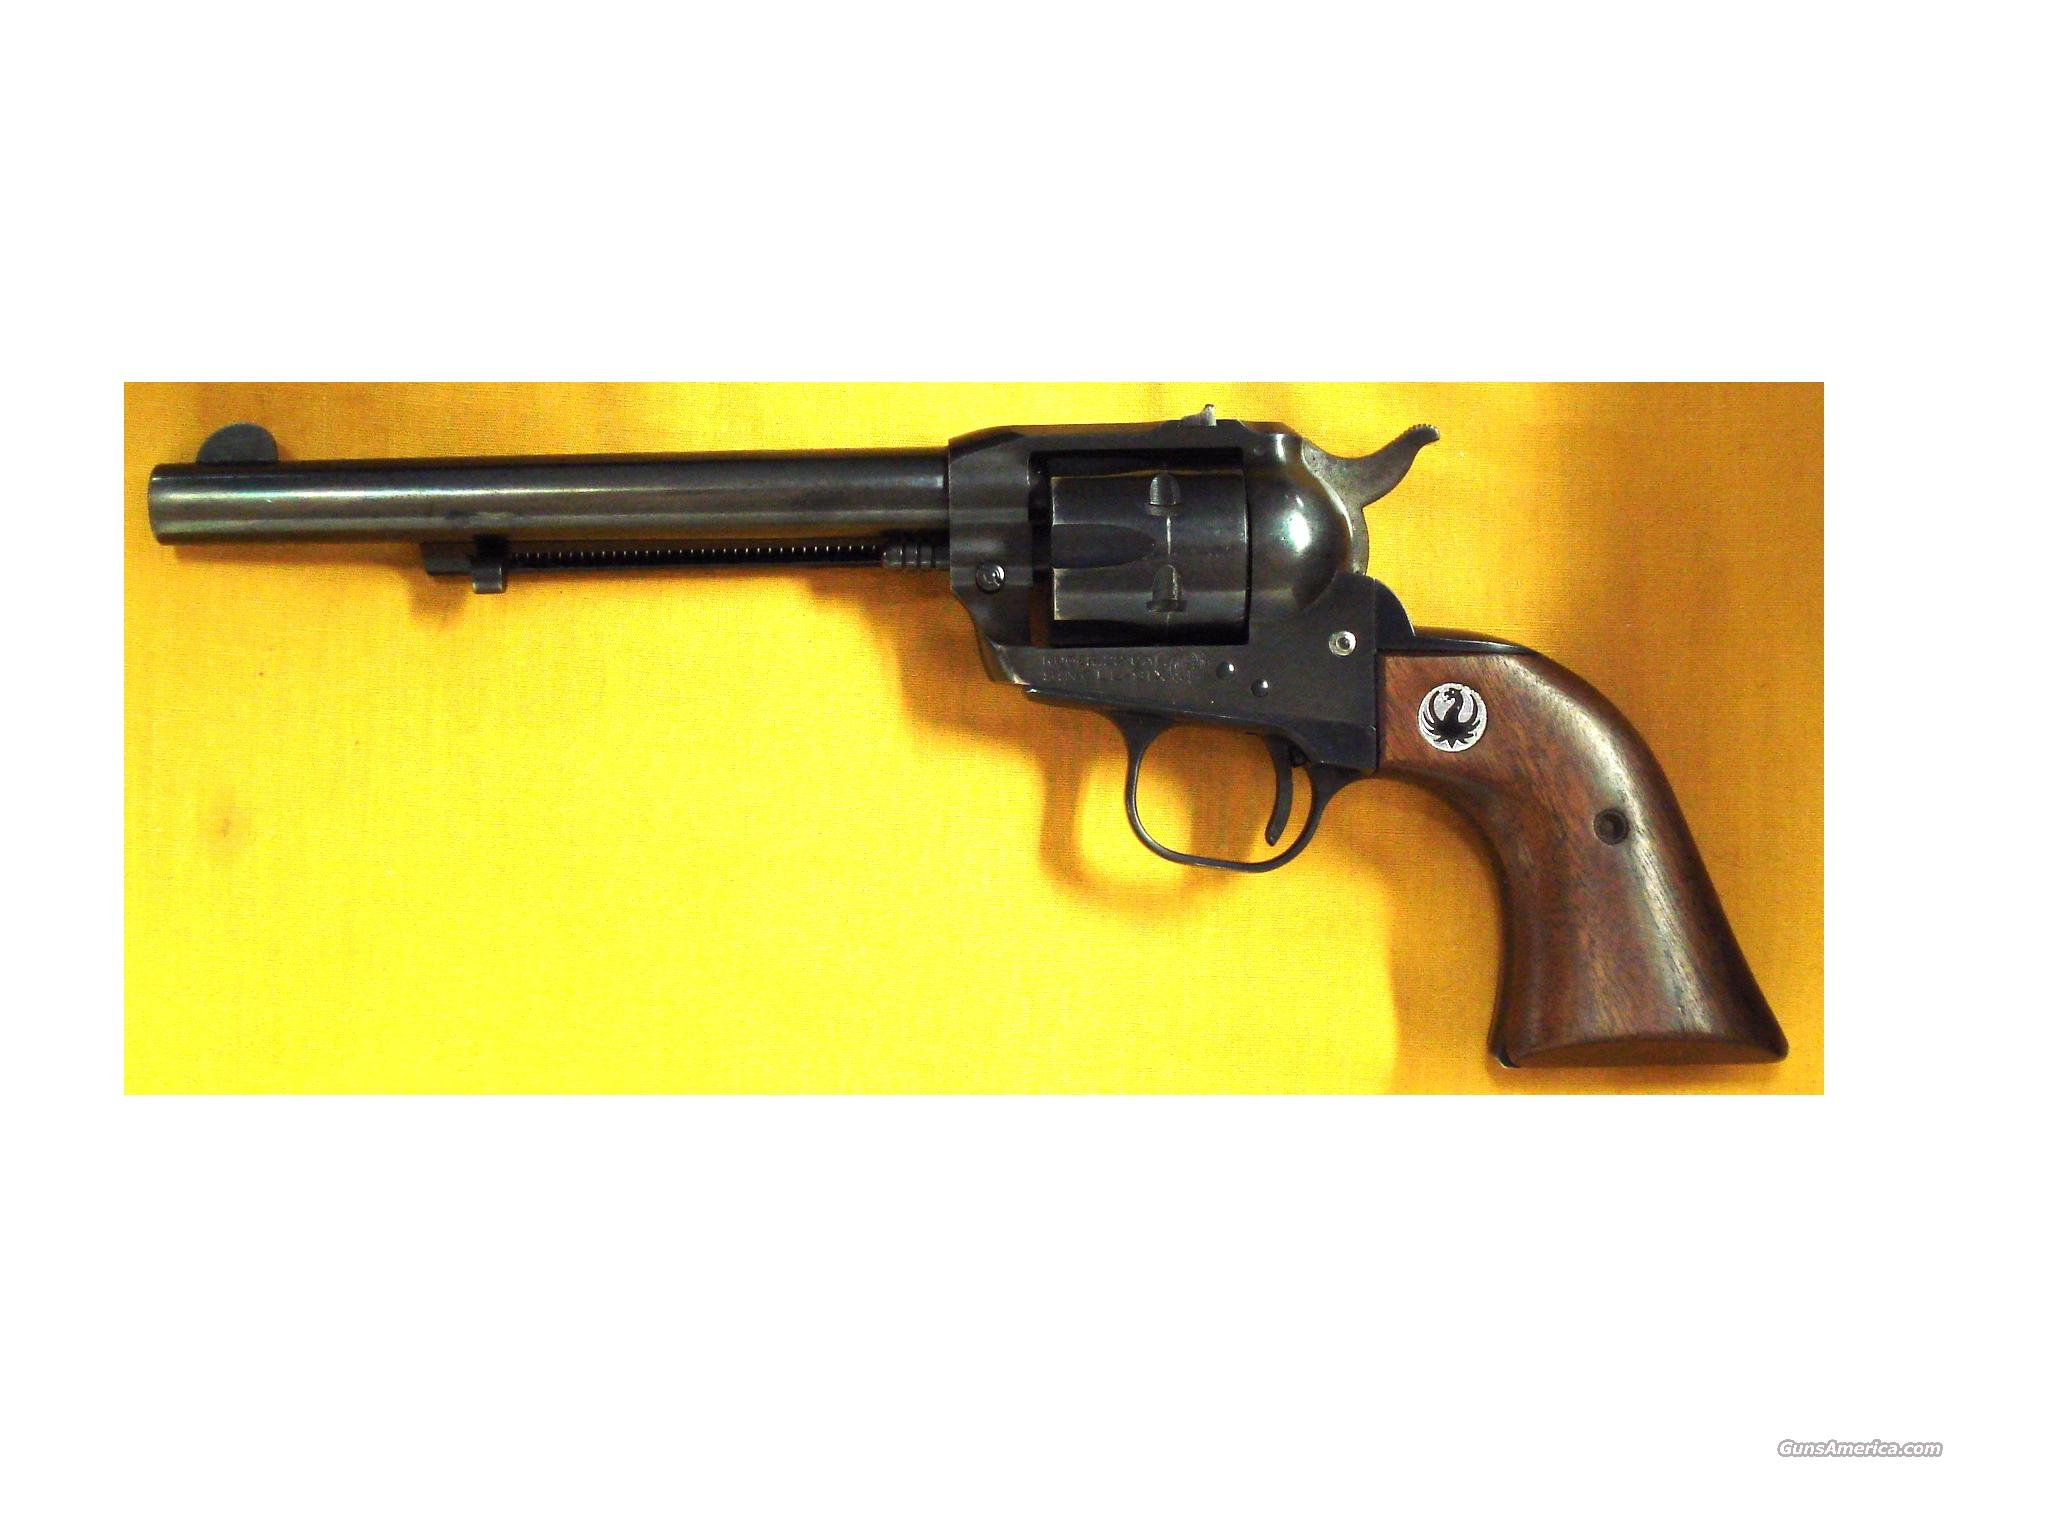 "RUGER SINGLE SIX .22LR 6 1/2""  BBL  Guns > Pistols > Ruger Single Action Revolvers > Single Six Type"